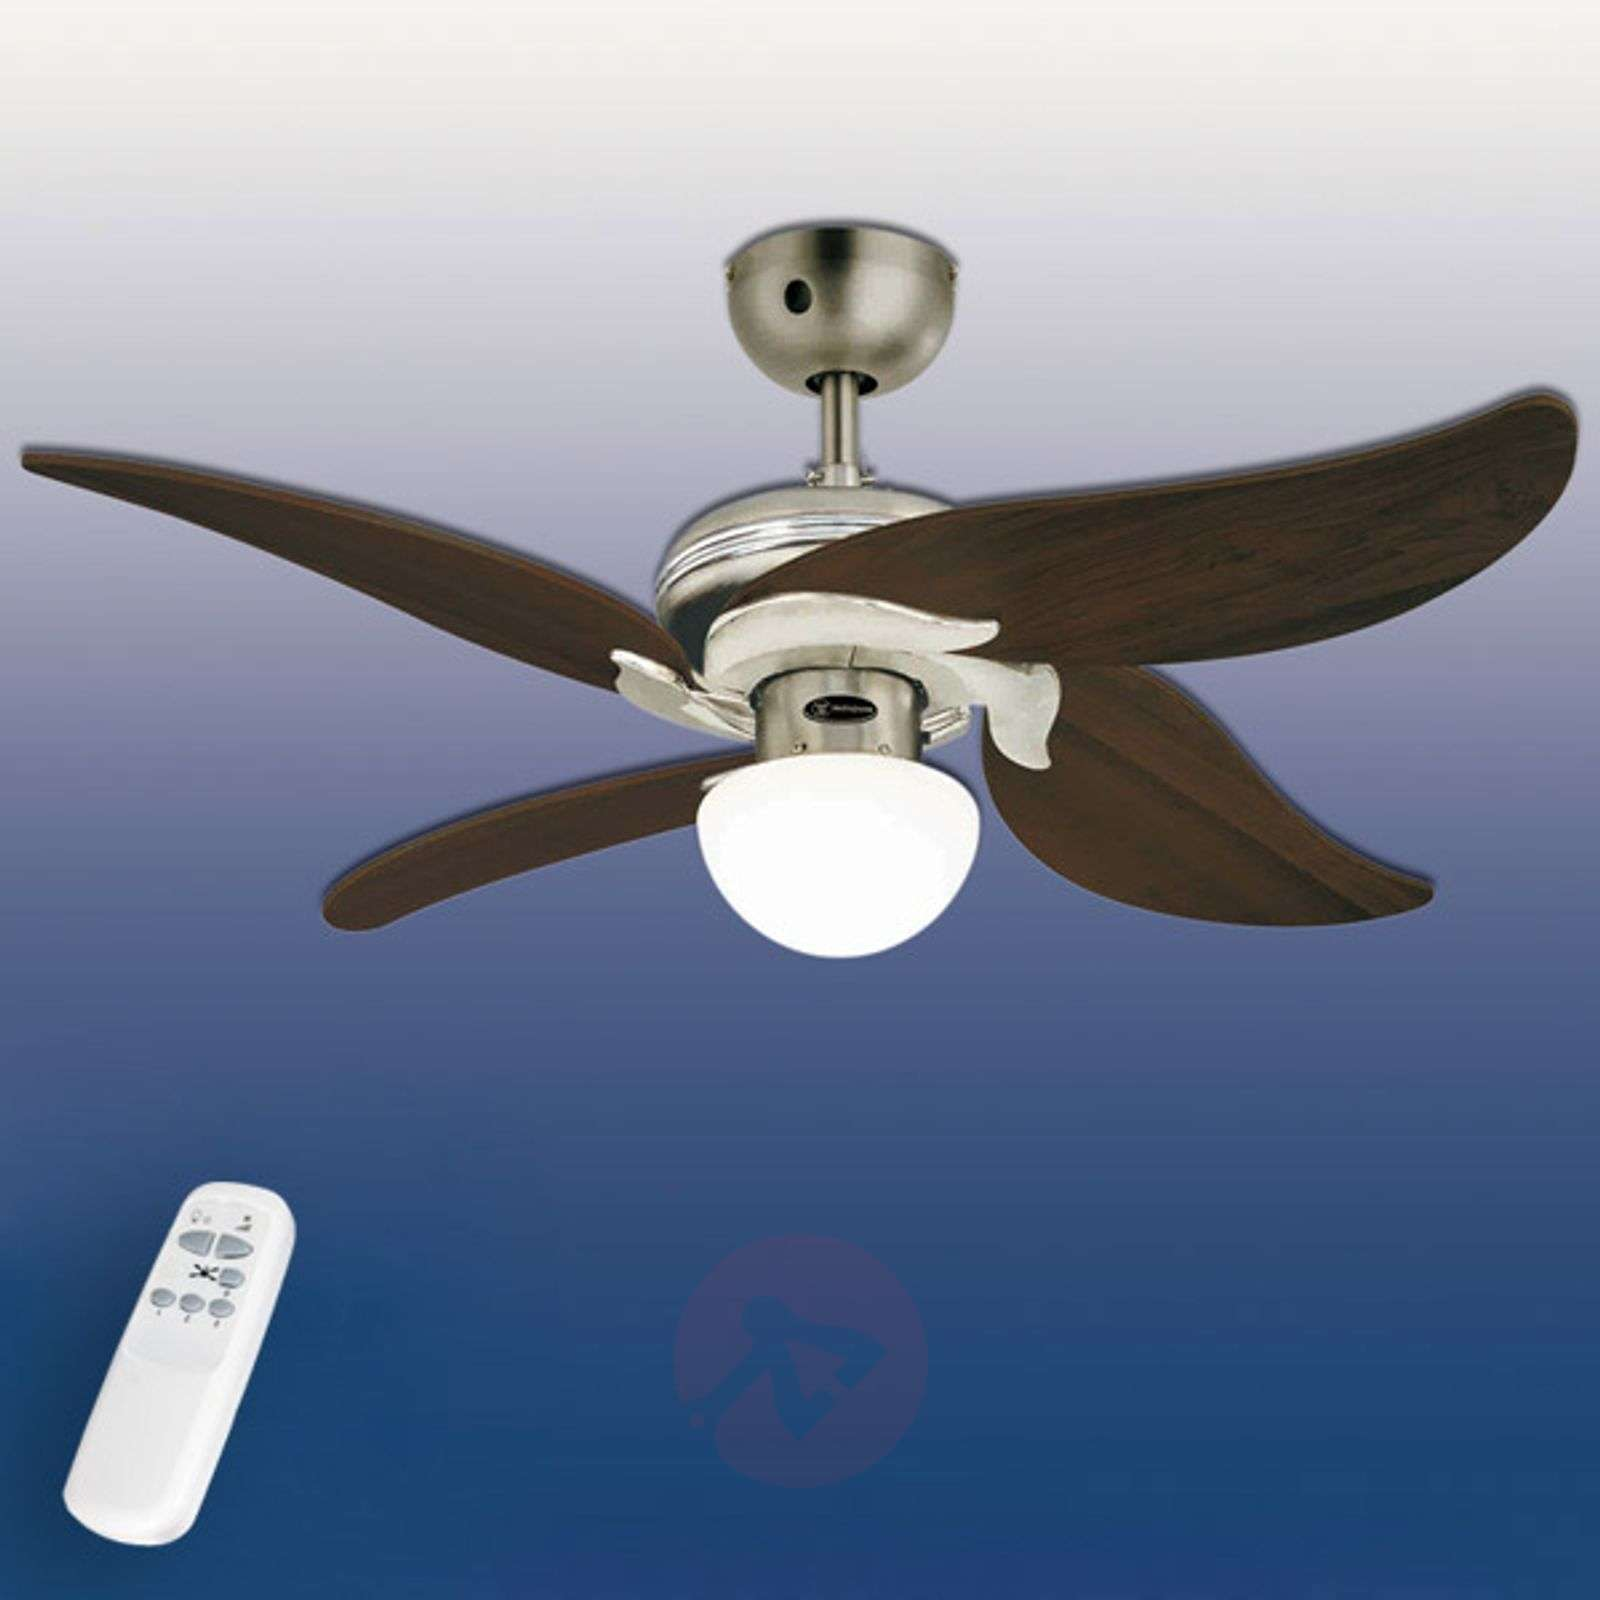 Jasmine Ceiling Fan With Infrared Remote Control 9602068 02